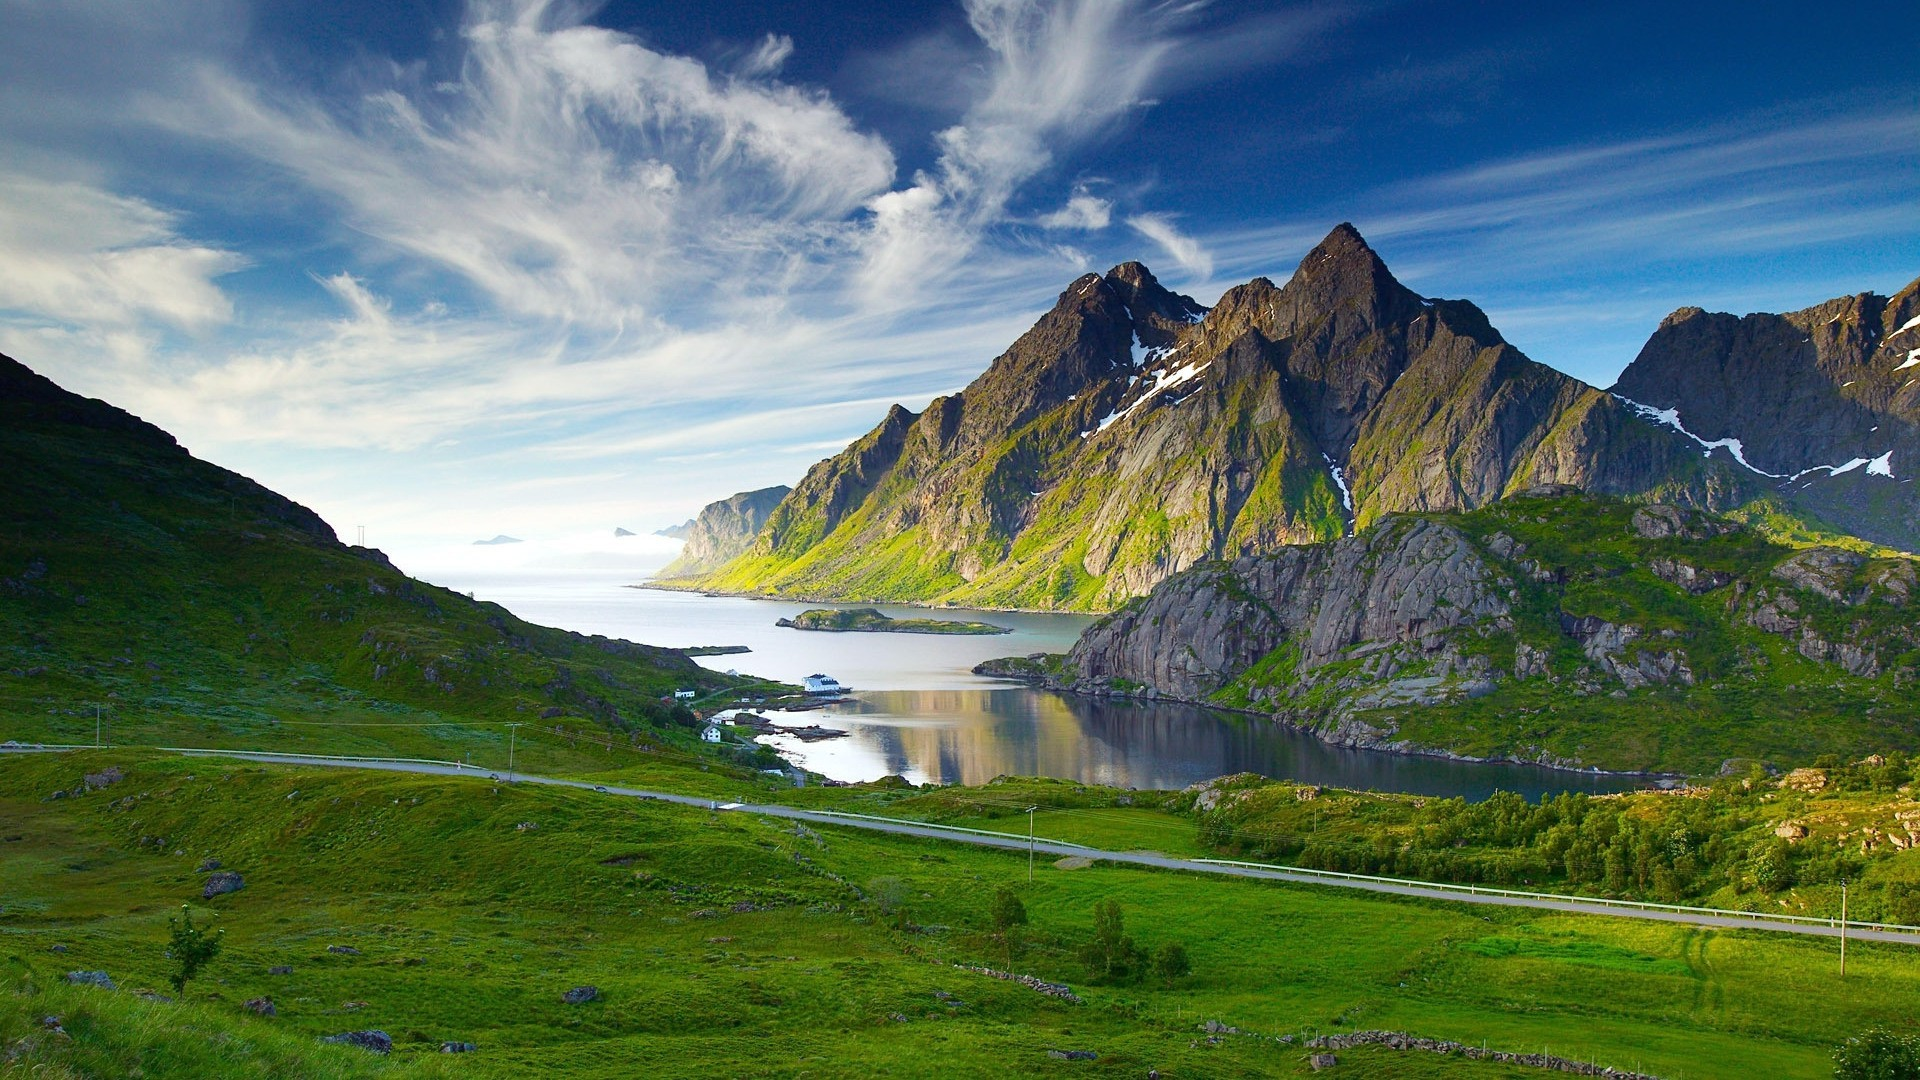 Hd wallpaper mountains - Hd Wallpaper Mountains Green Mountains And Lake In Norway Widescreen High Resolution Wallpaper Download